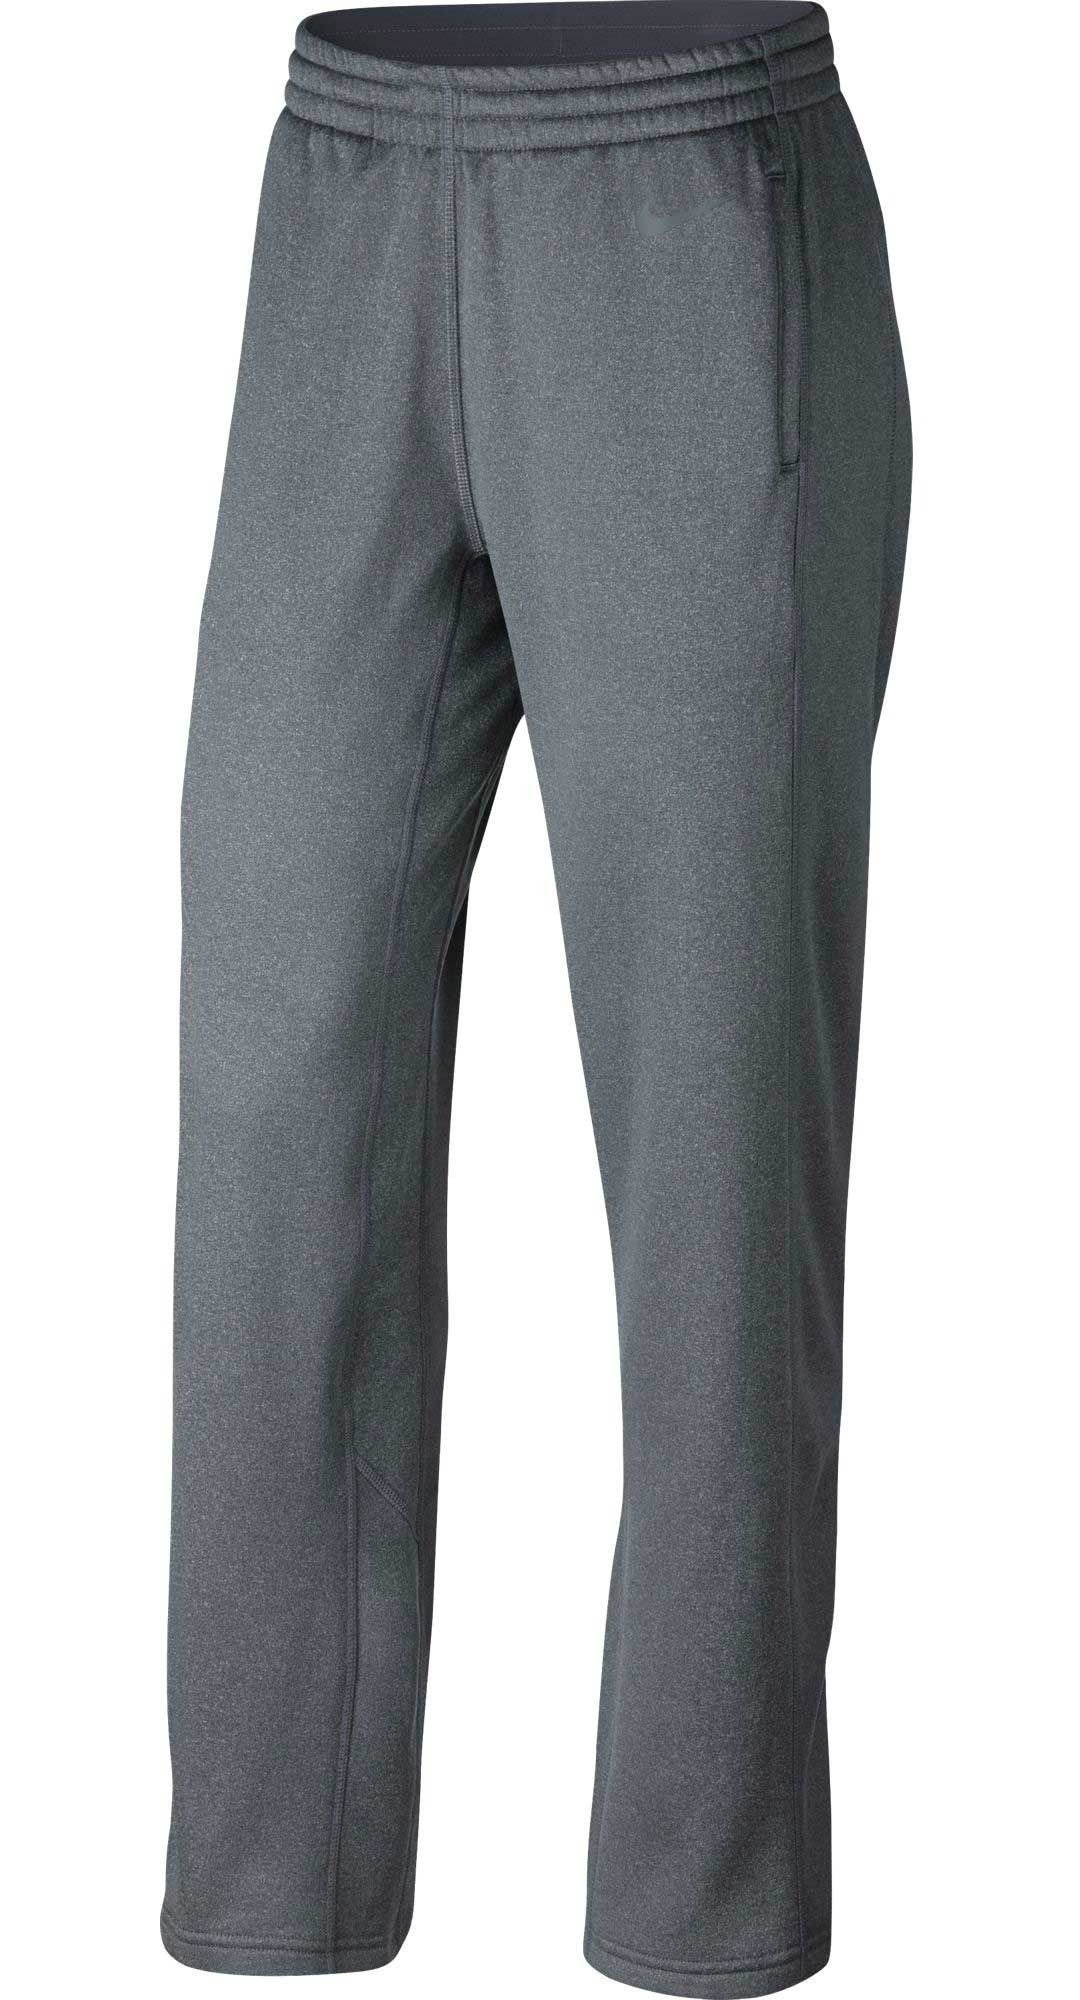 reputable site 085d0 e1728 Nike Women s Therma All Time Pants 1